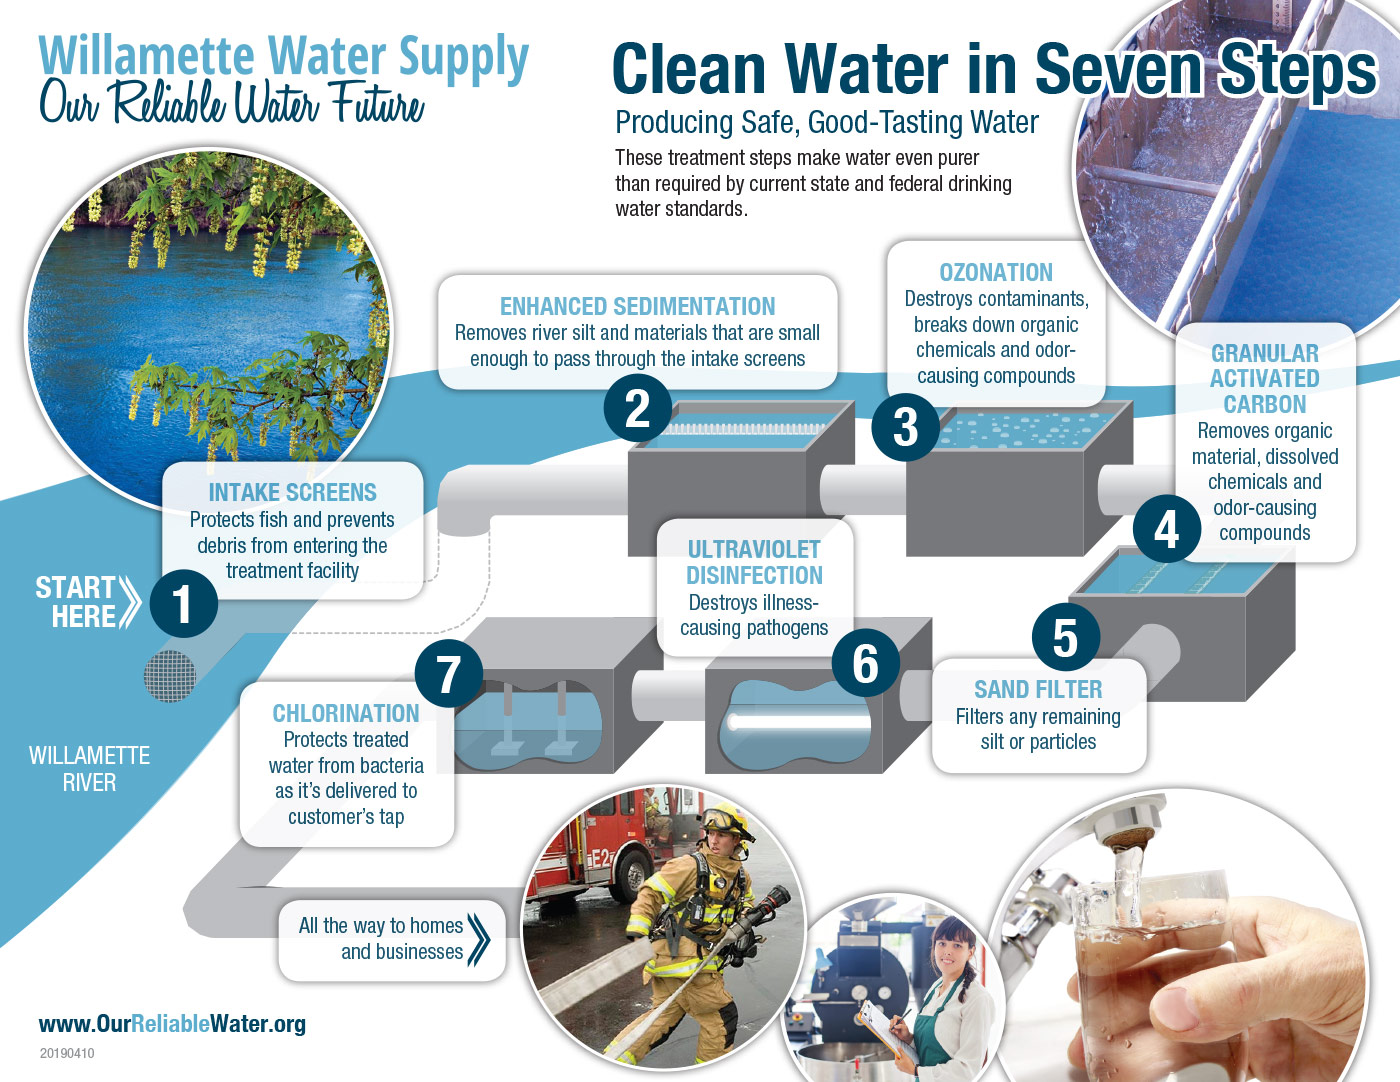 Quality Water after Filtration   Willamette Water Supply Program